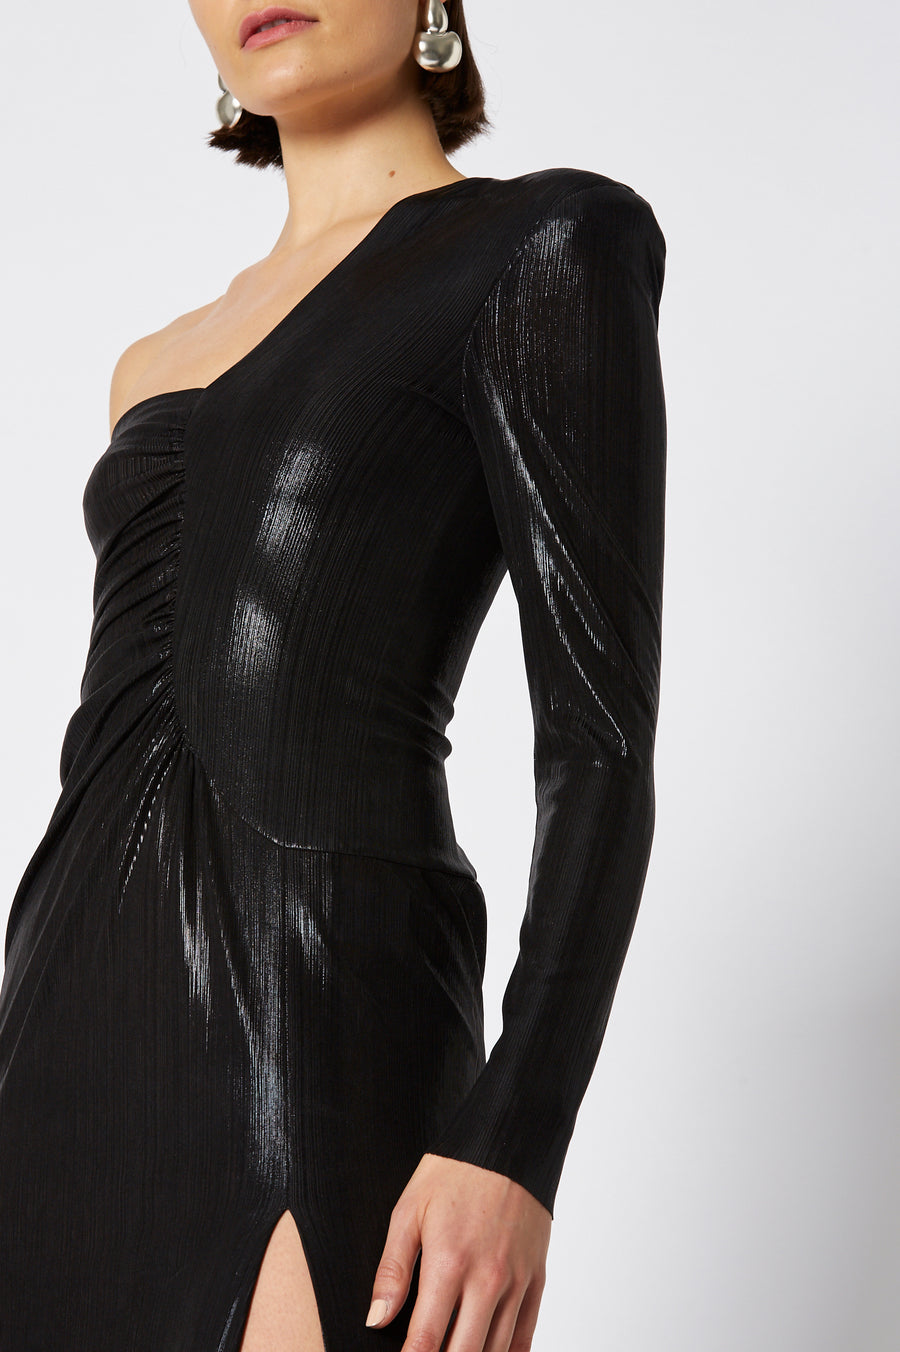 Lacquer Jersey Dress in shimmering black features a one shoulder arm and high slit, color black